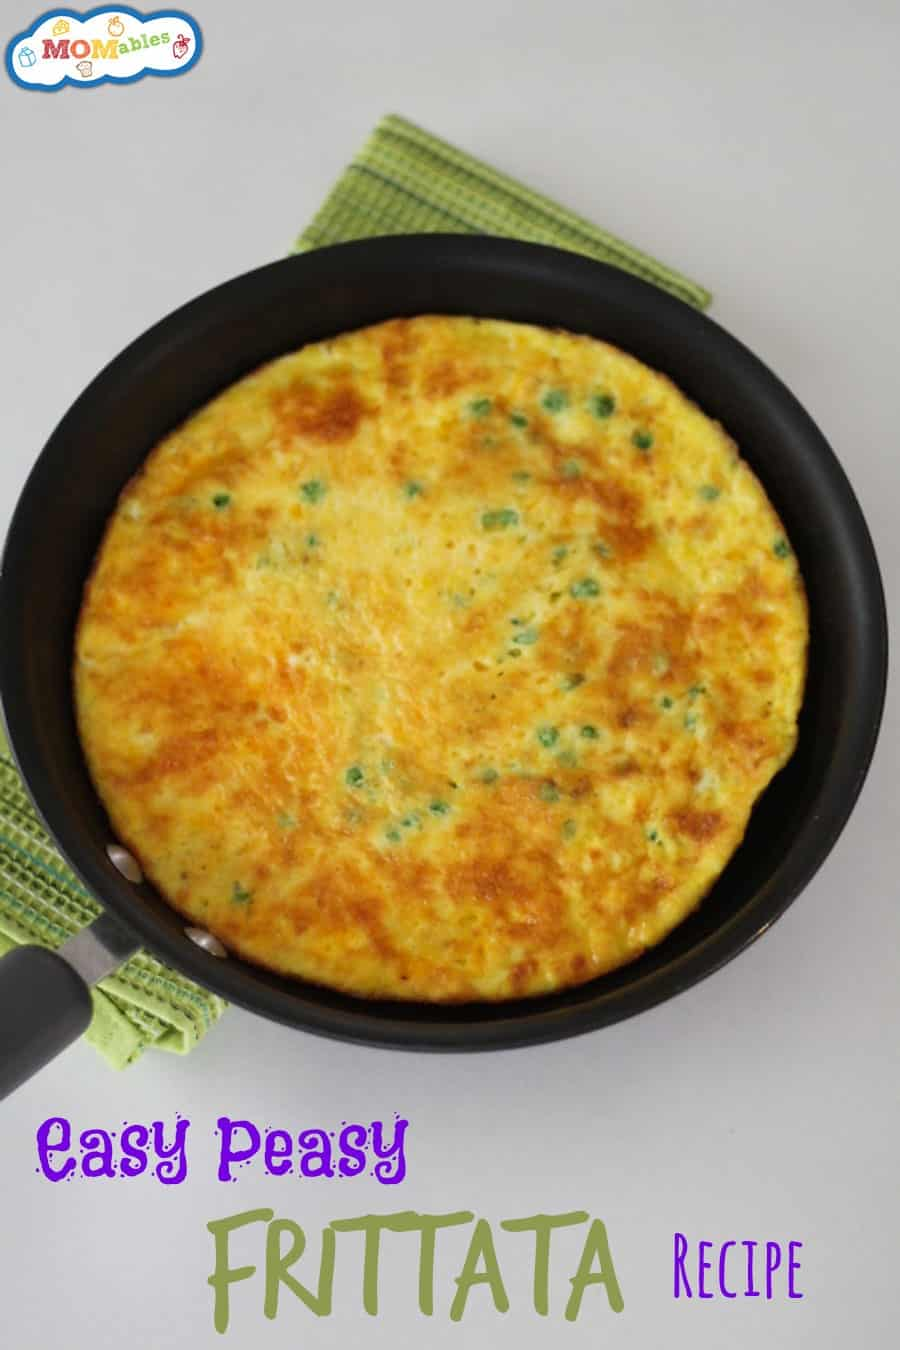 easy peasy frittata recipe